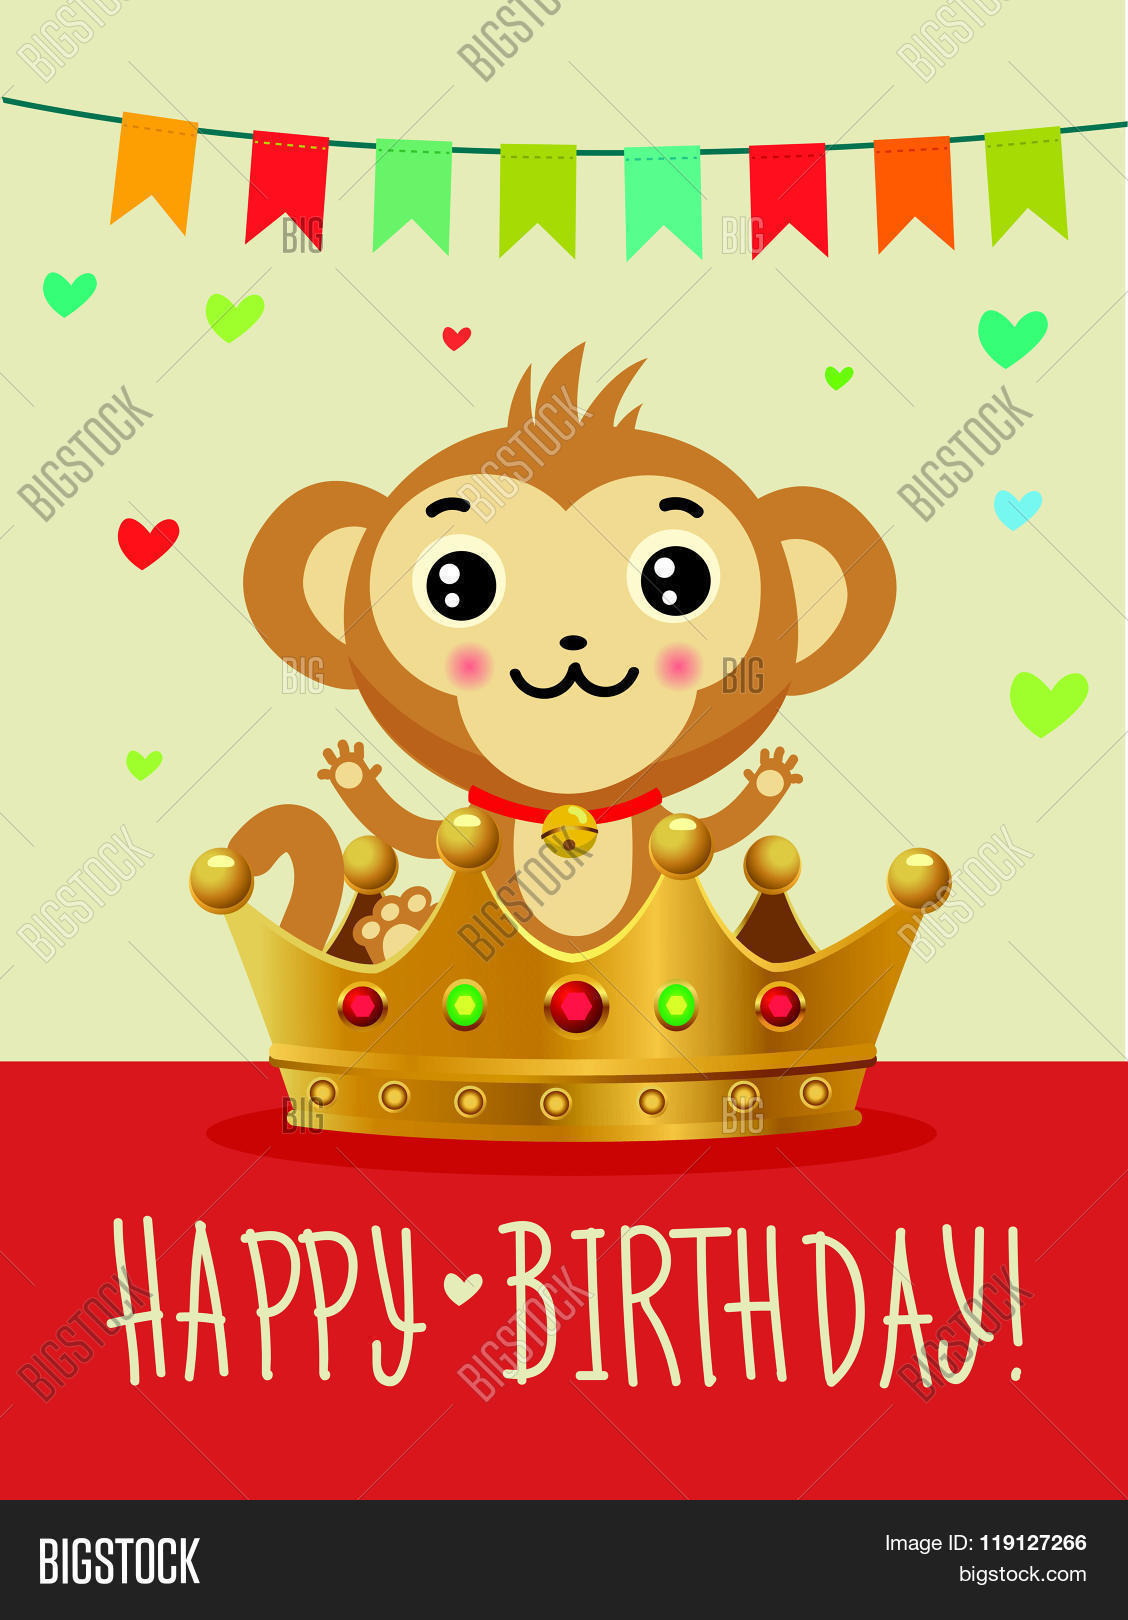 Wondrous Happy Birthday You Vector Photo Free Trial Bigstock Funny Birthday Cards Online Alyptdamsfinfo